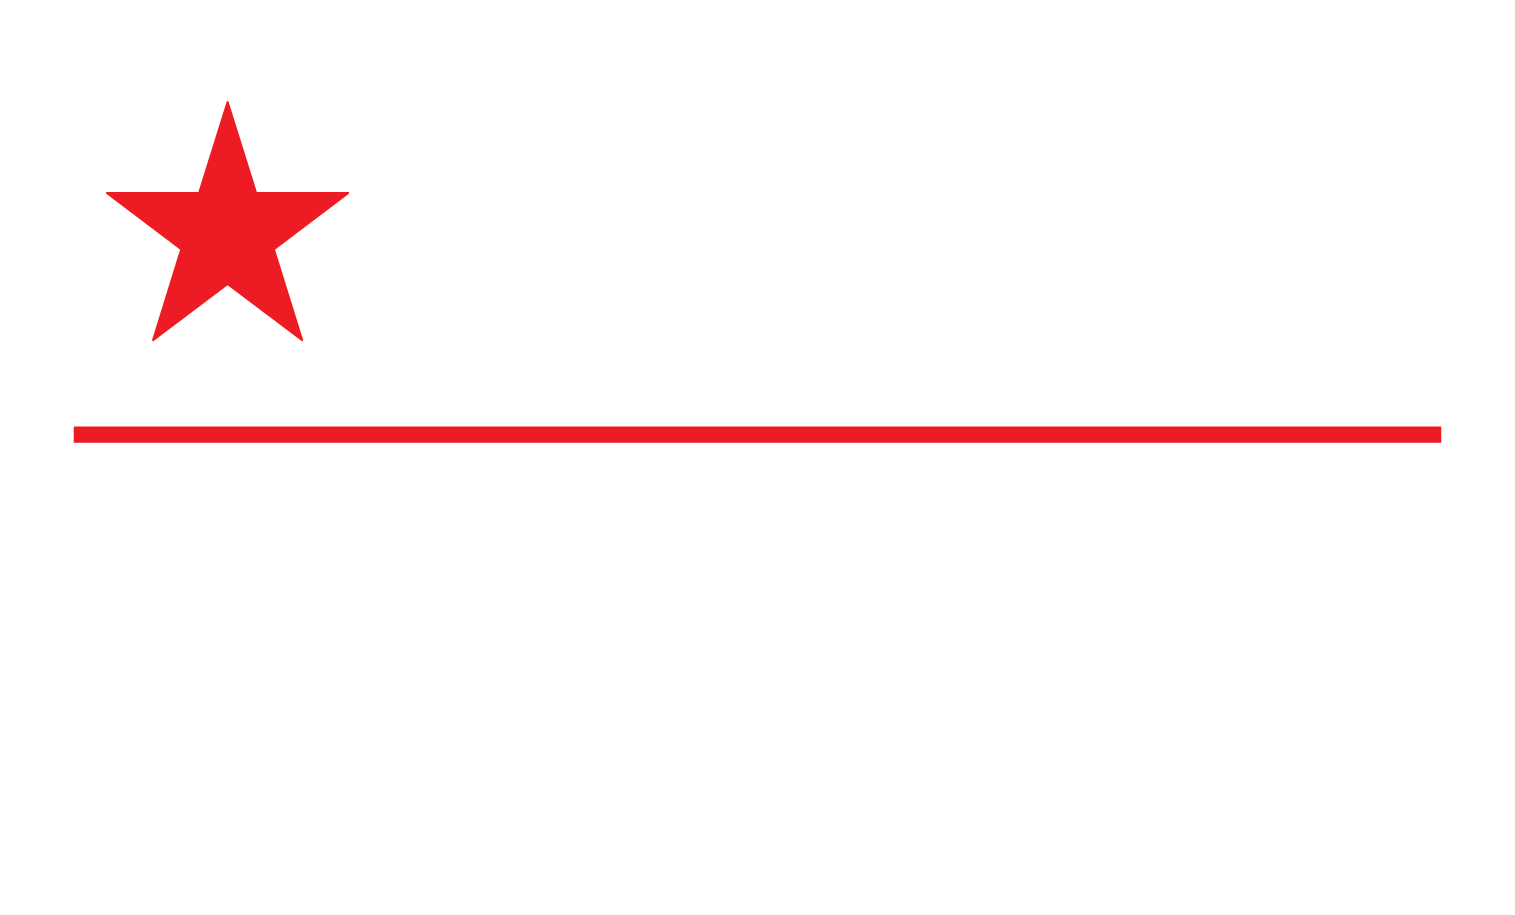 1 | Harmony Science Academy - Pflugerville